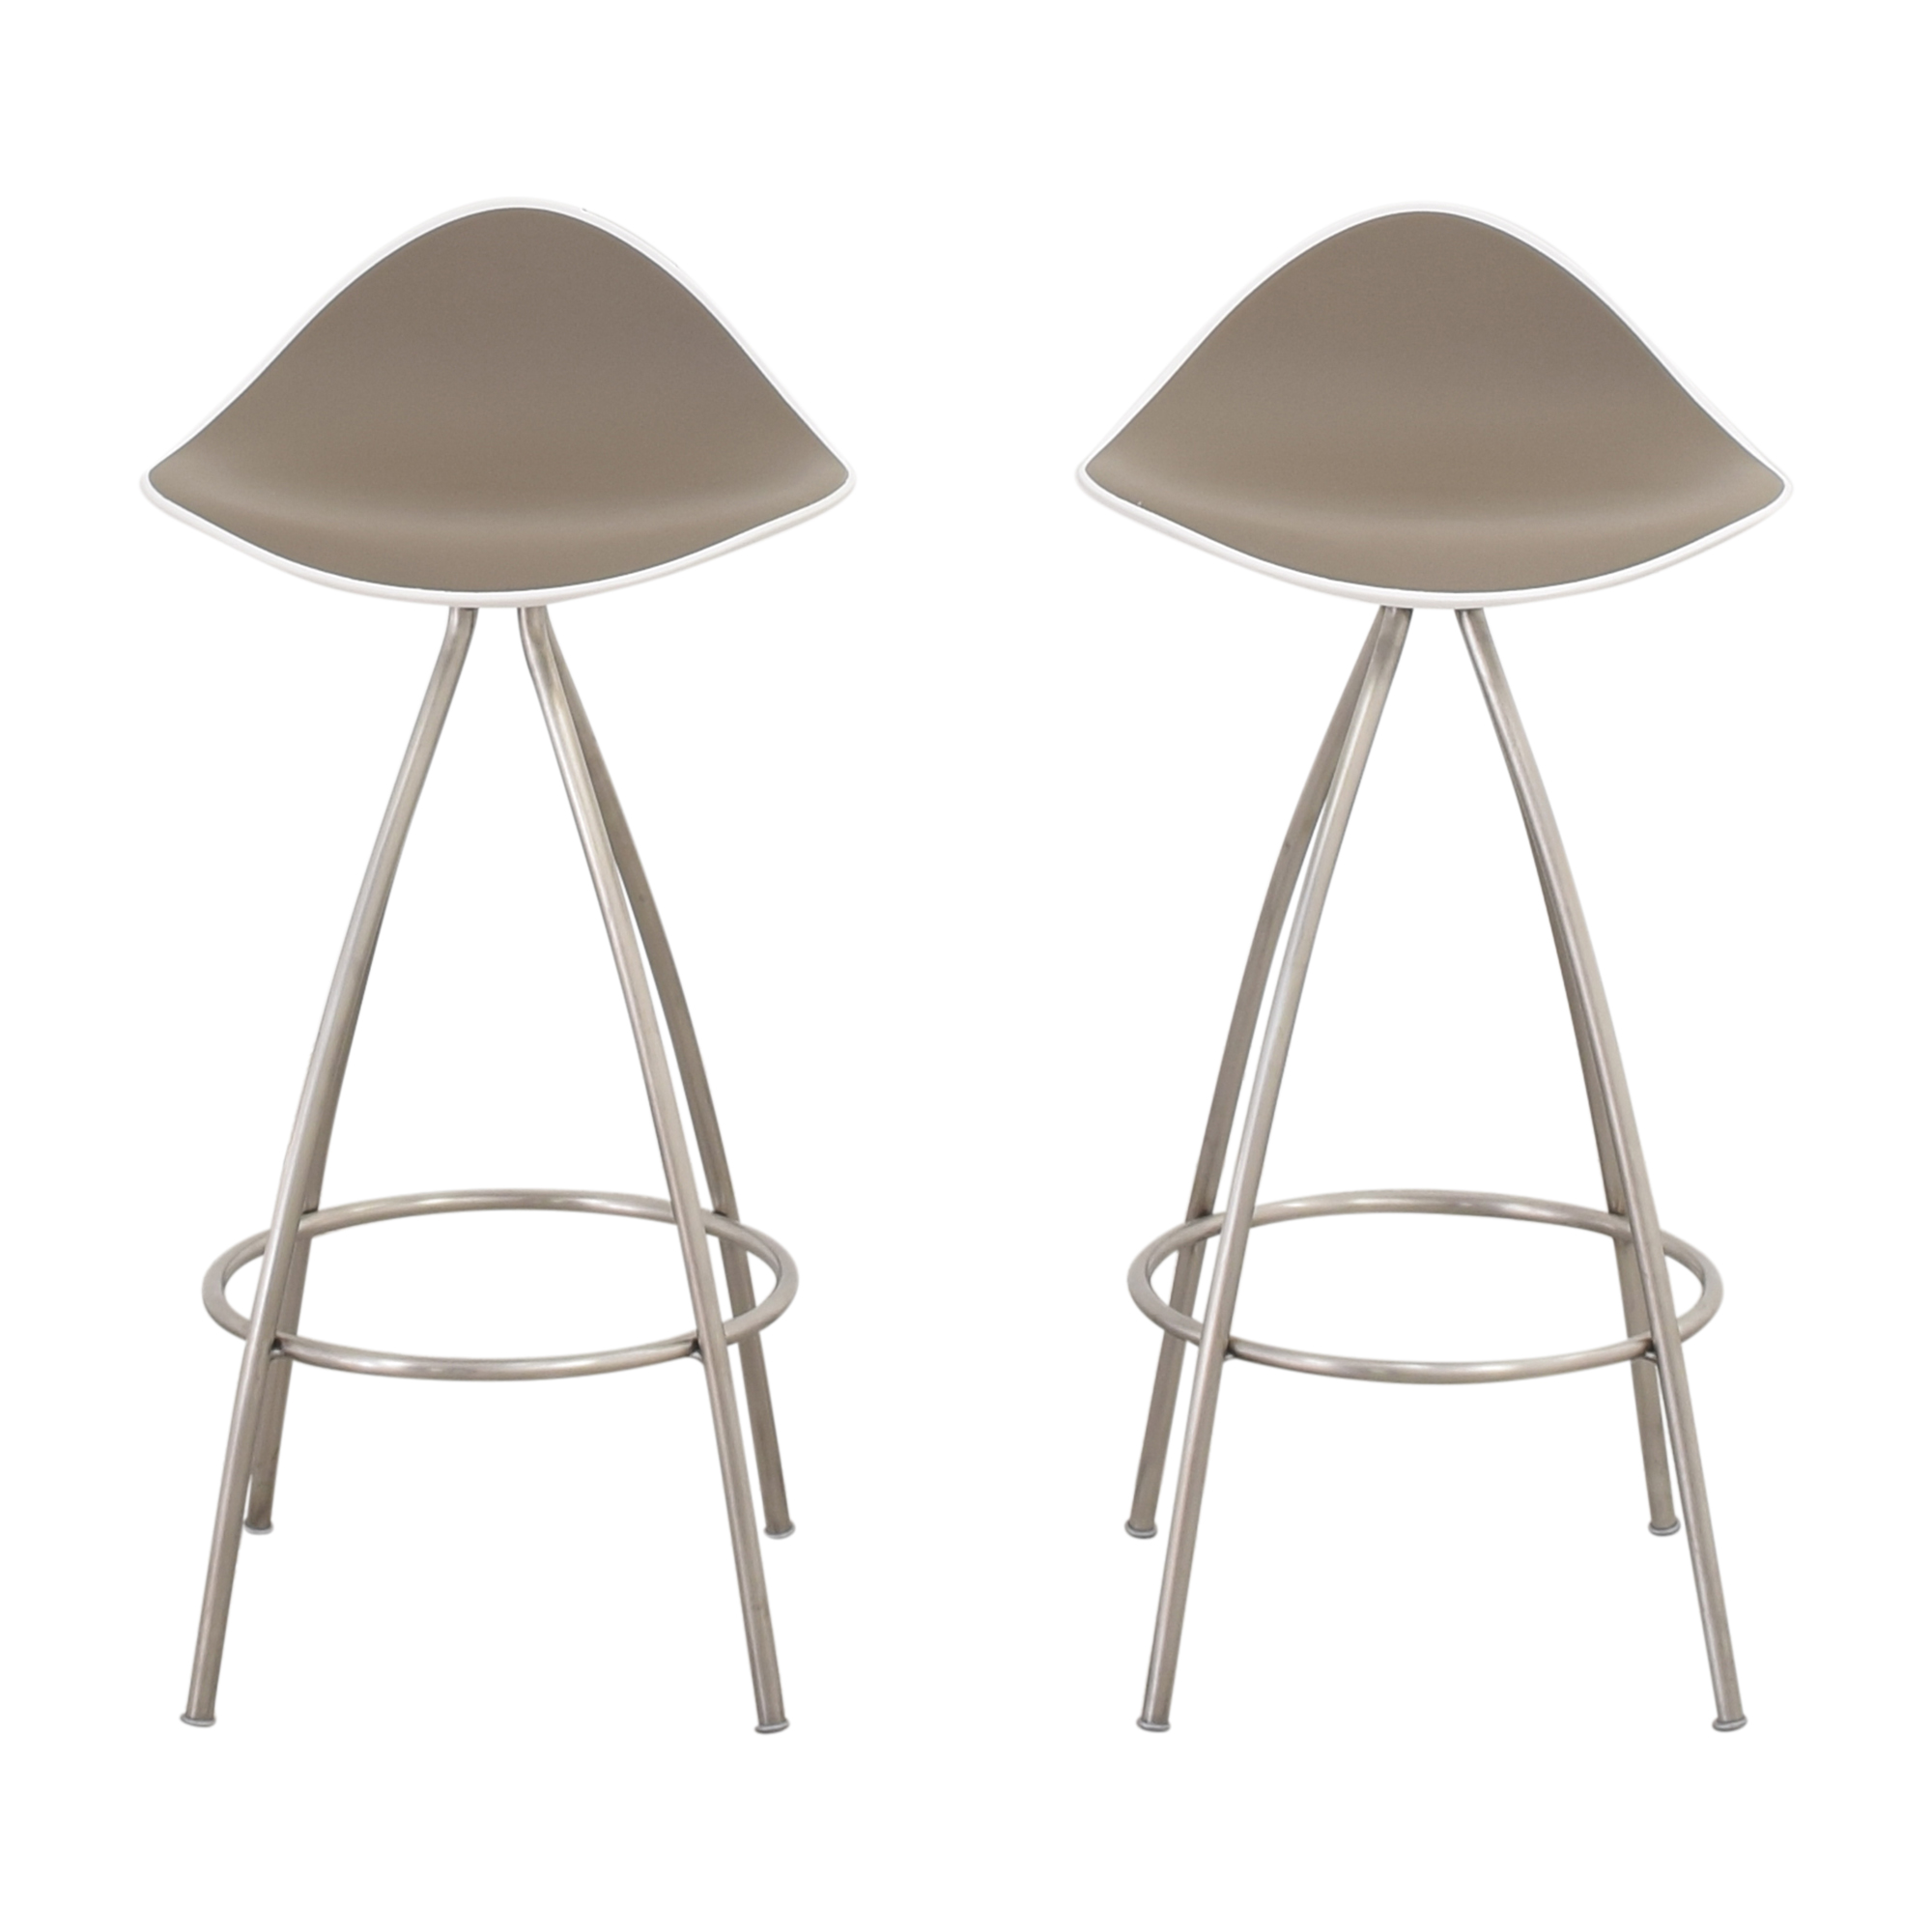 Design Within Reach Design Within Reach Onda Counter Stools dimensions